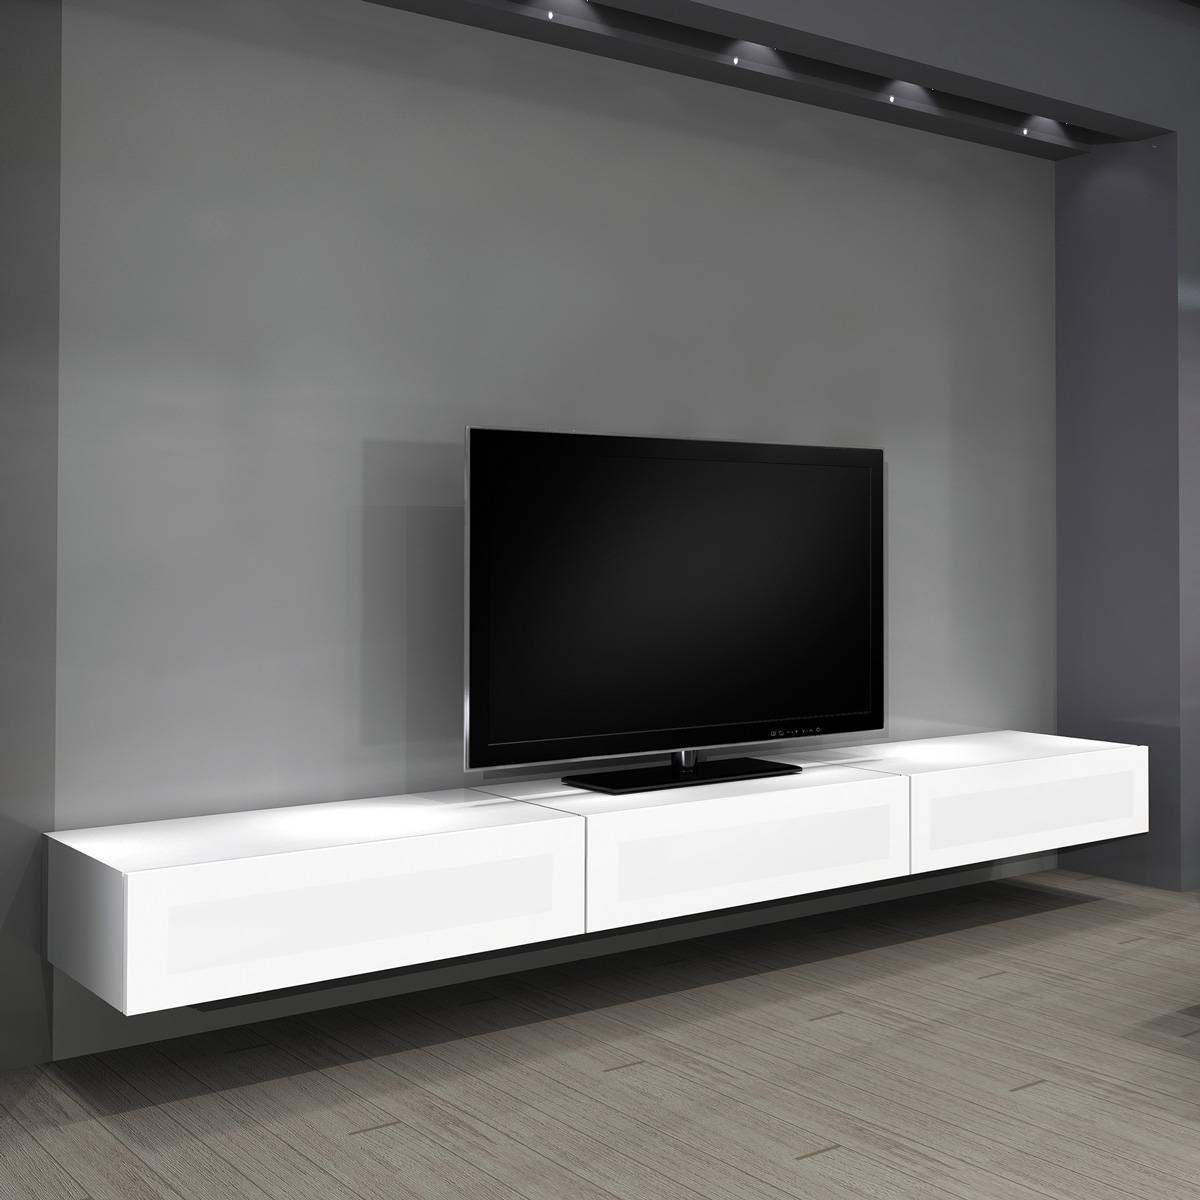 Floating Long White Wooden Cabinet With Tv On The Top Placed On inside Long White Tv Cabinets (Image 9 of 15)